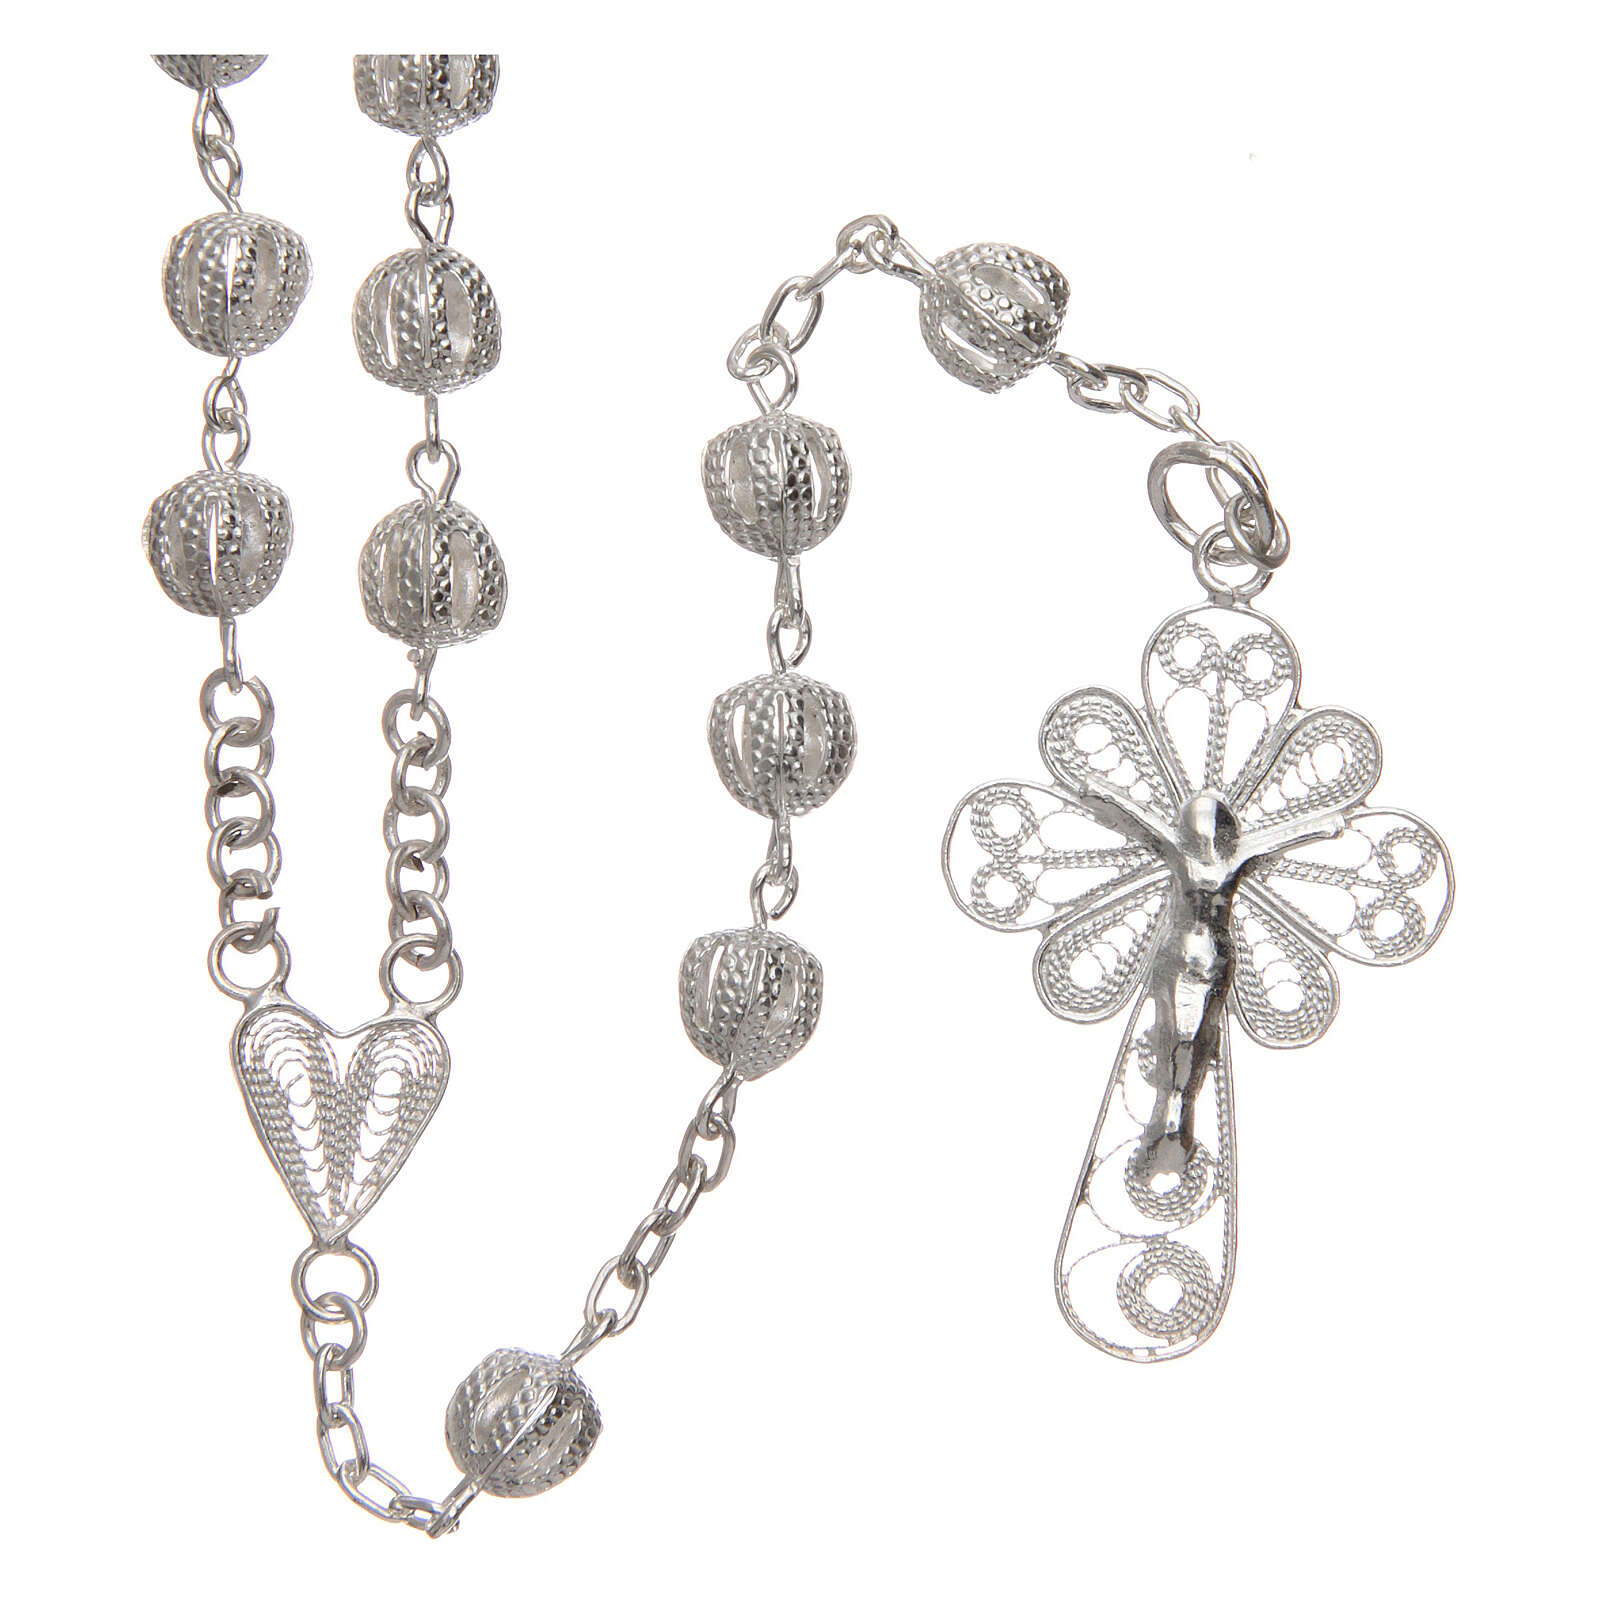 Filigree rosary round beads 925 silver 6 mm 4